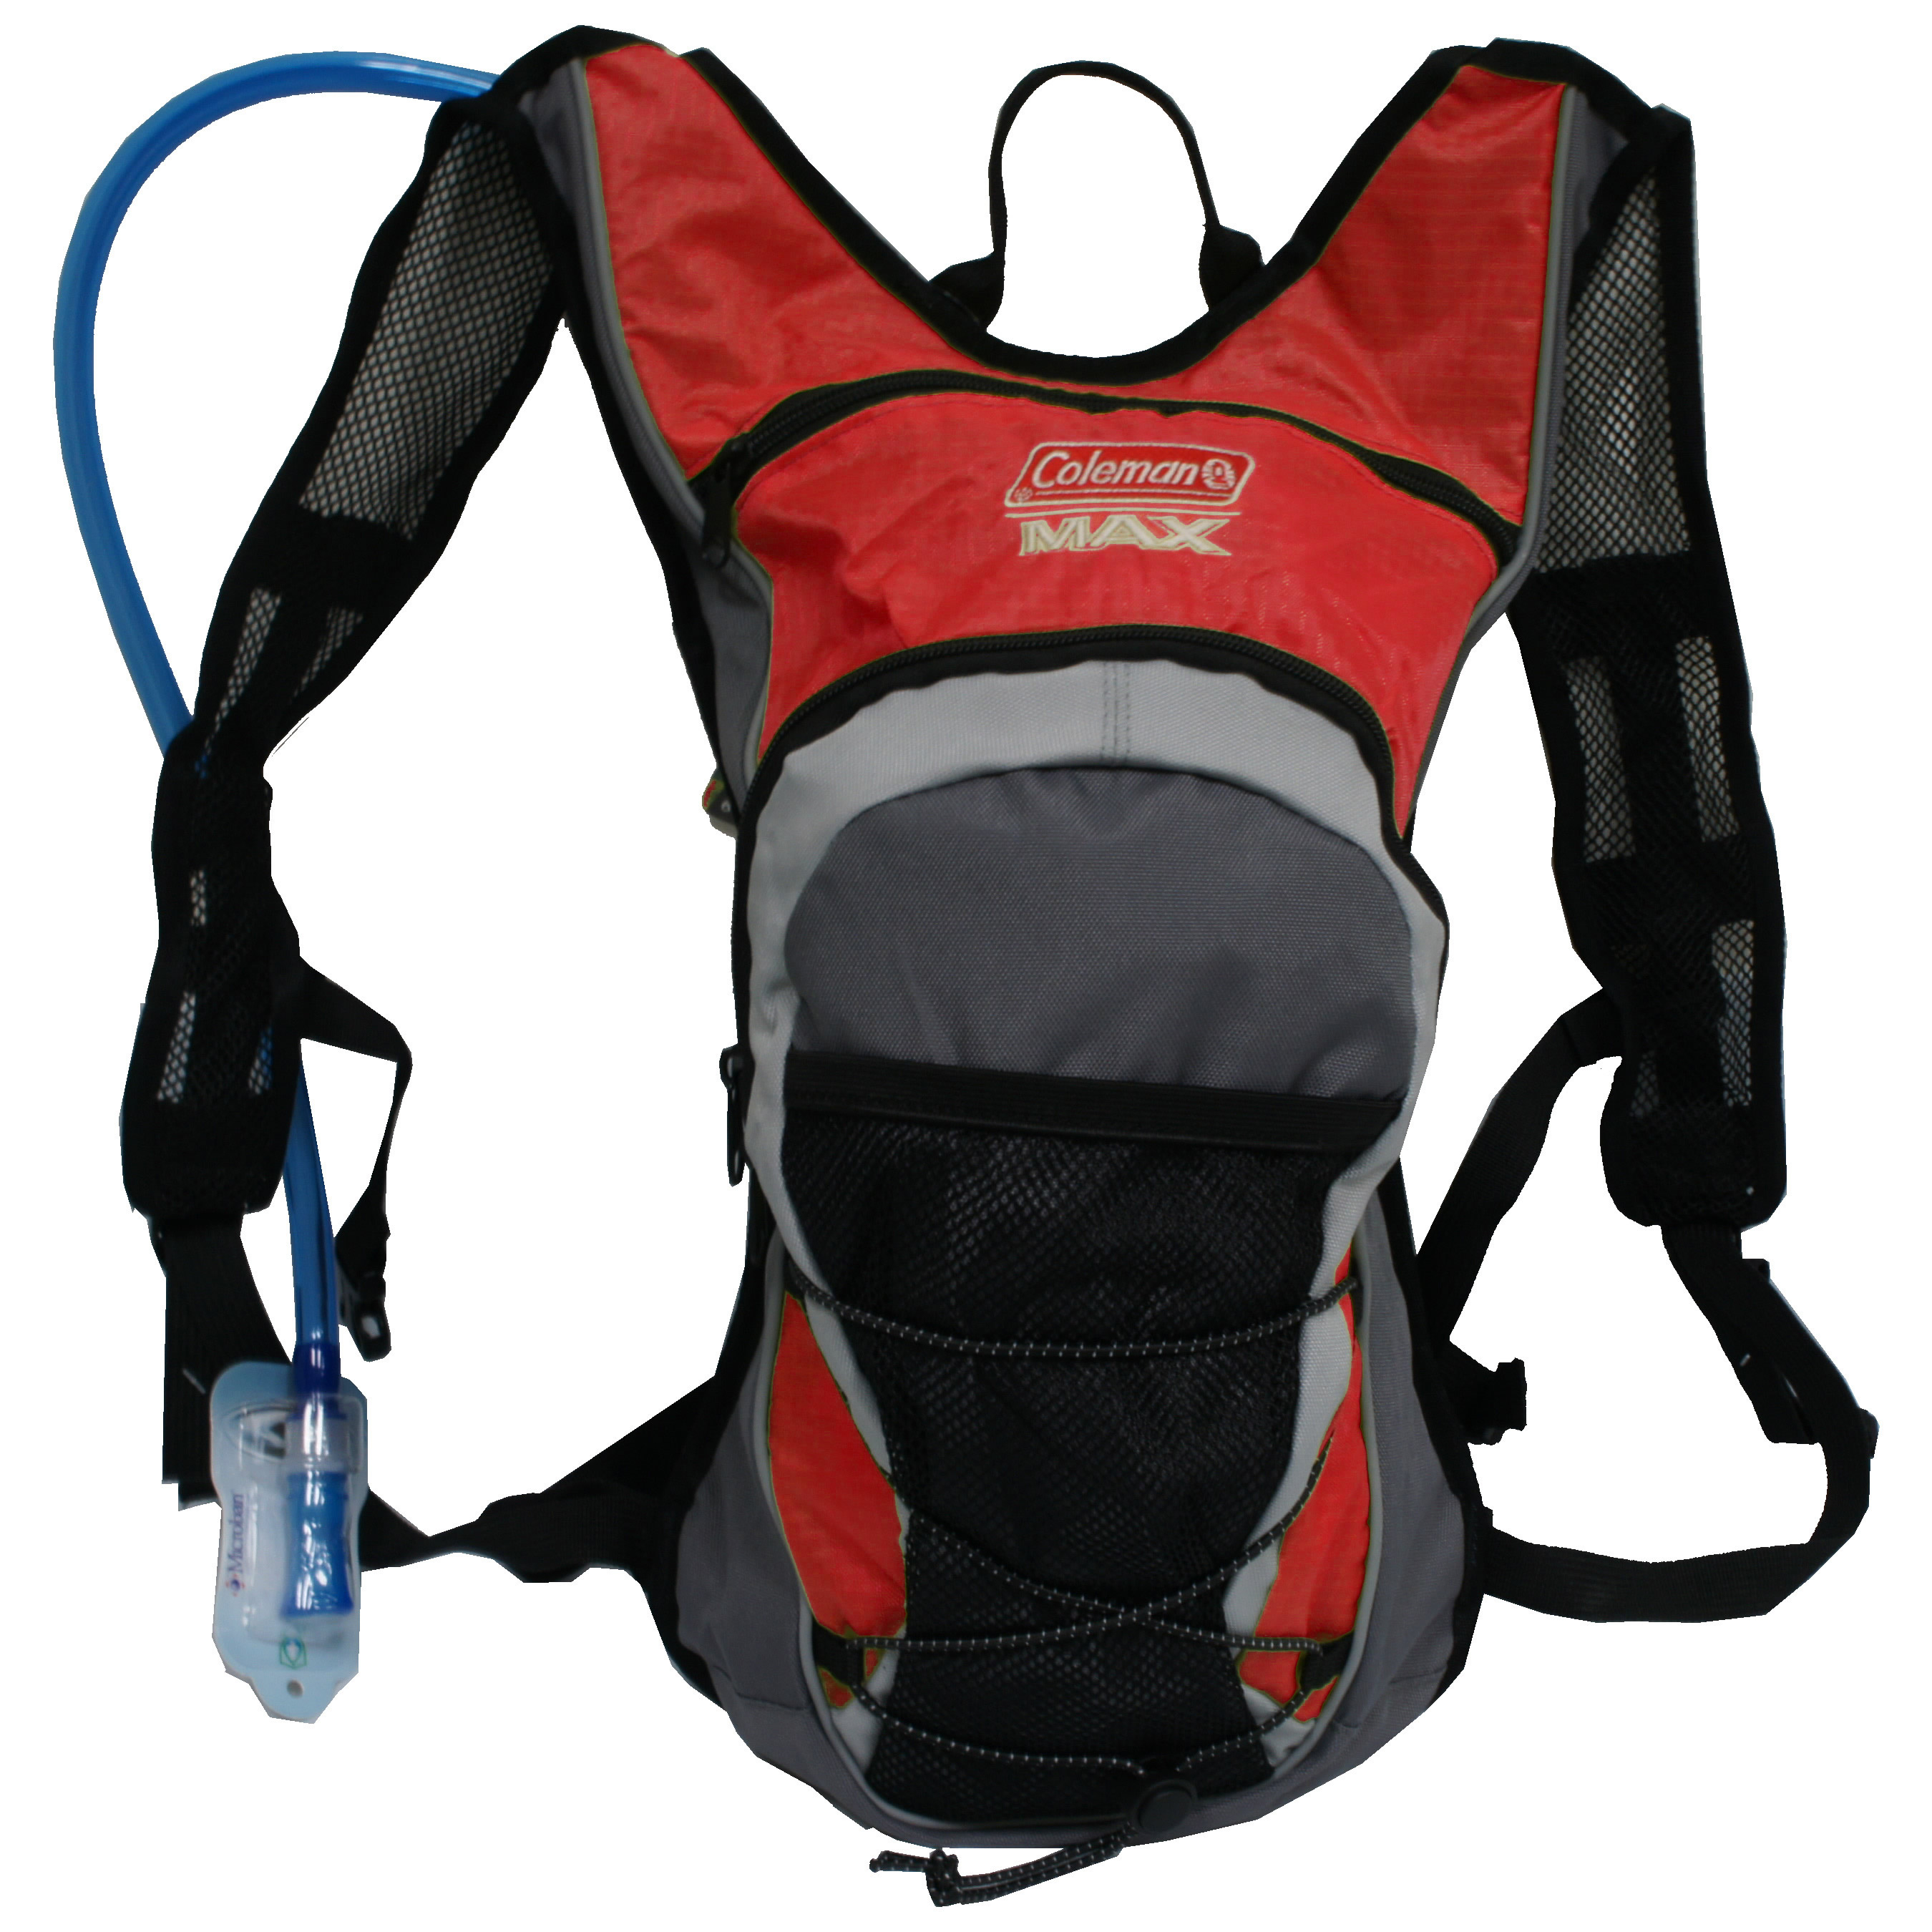 Coleman-Max-Hydration-Pack-Lightweight-Backpack-2L-Hydration-Bladder-Red-Green